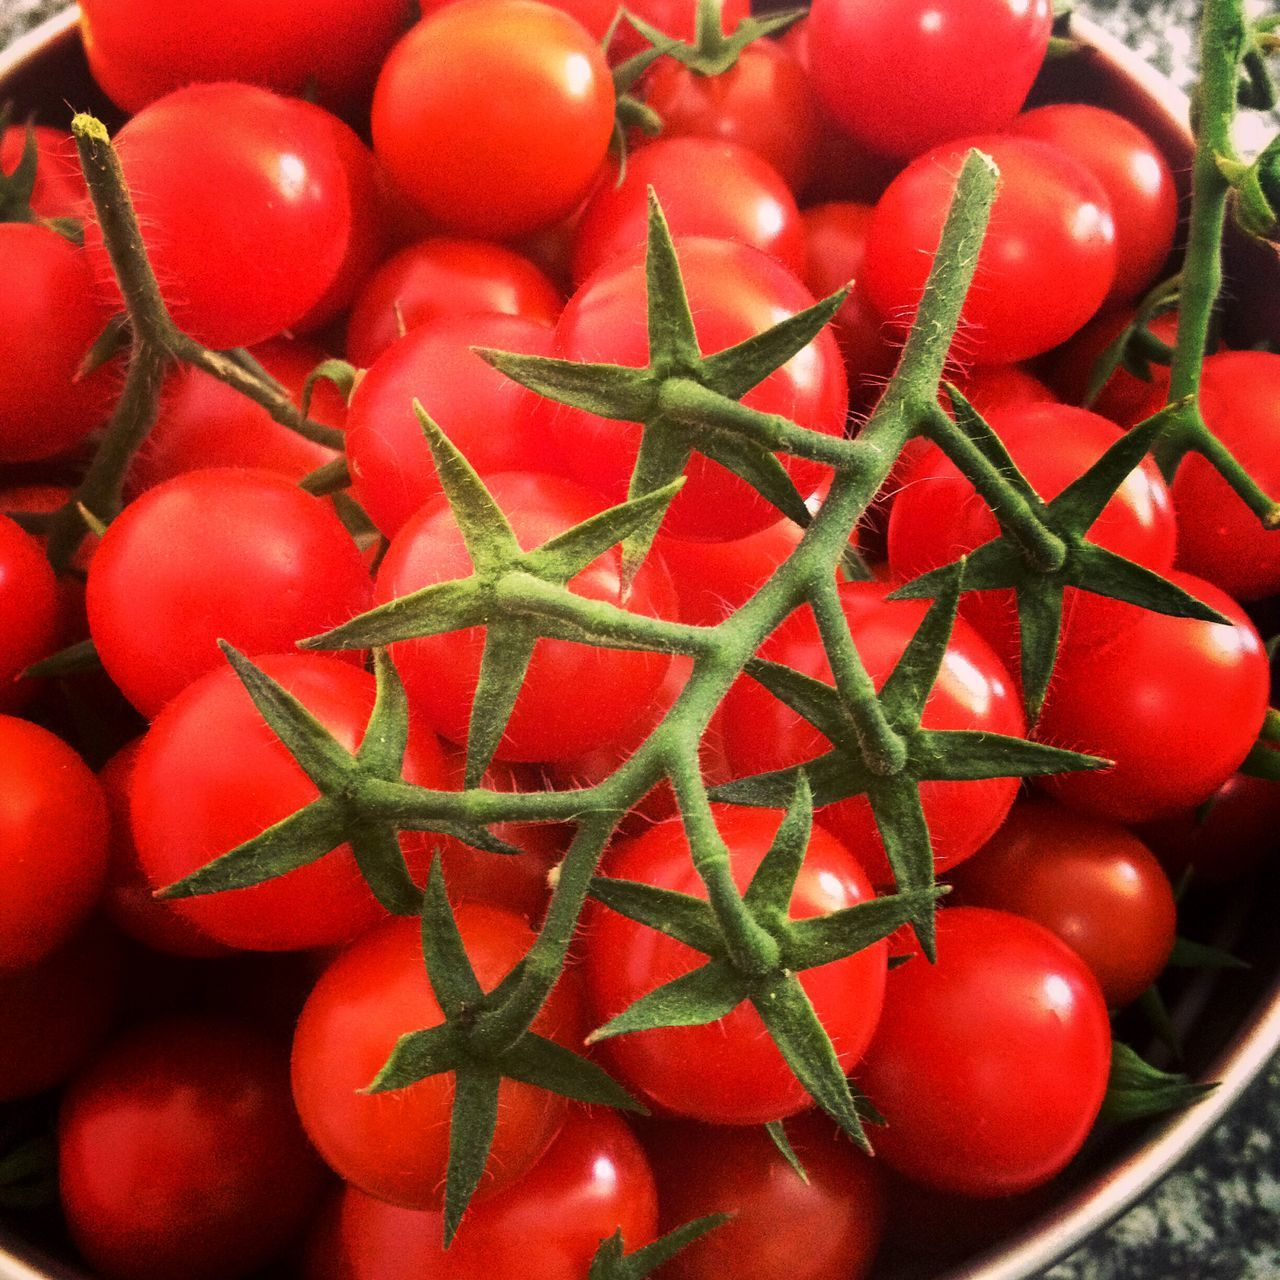 Red Freshness Healthy Eating Food Juicy Nature Tomatos Pomodoro Rosso Verdura Mangiareitaliano